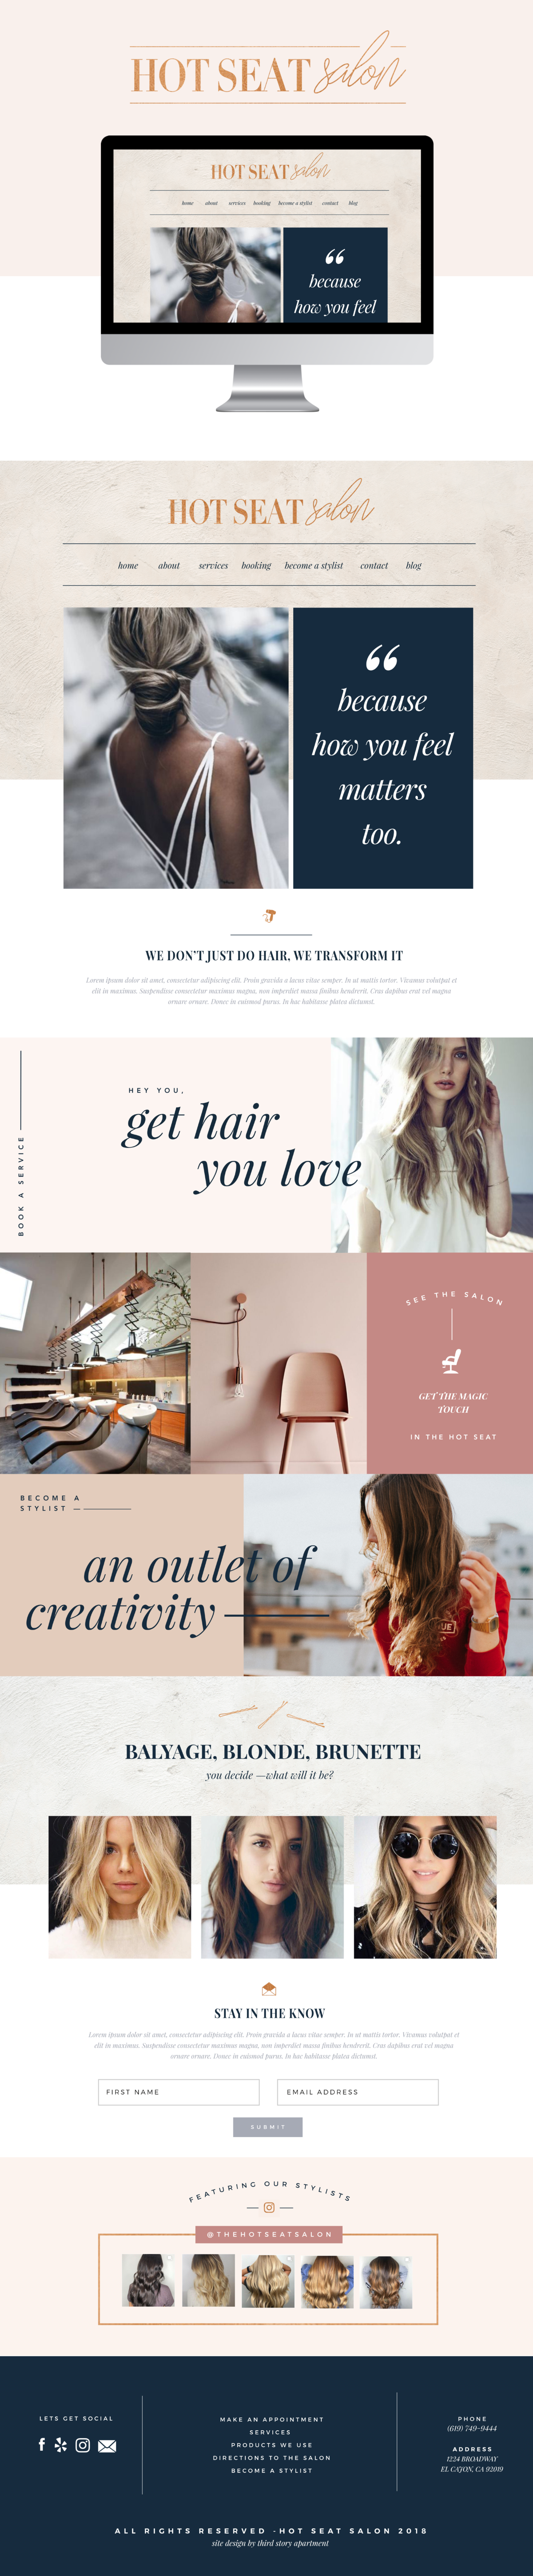 ThirdStory-Template-Desktop-And-Layout-HotSeatSalon